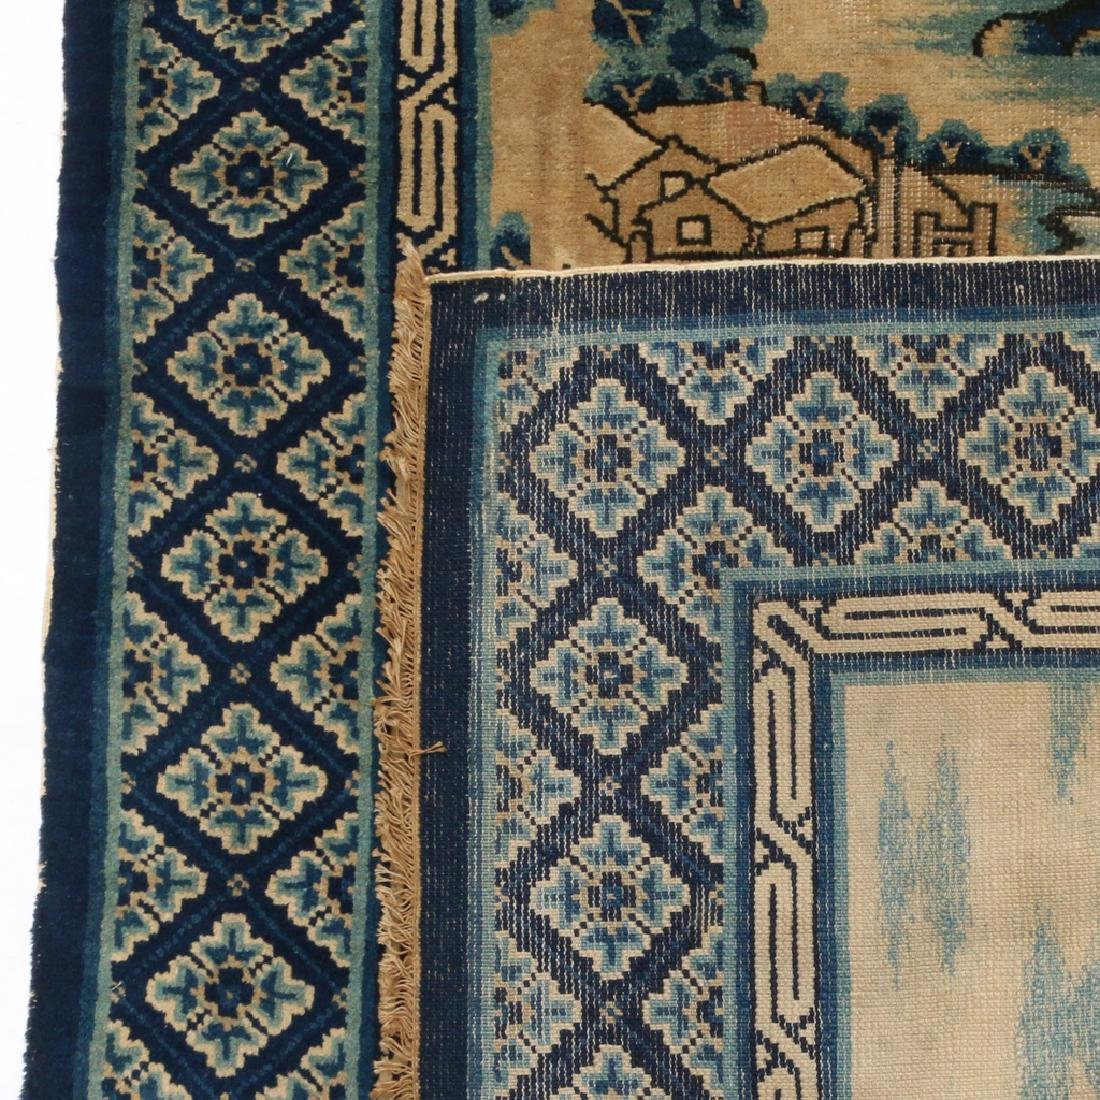 (2pc) ANTIQUE CHINESE PICTORIAL RUGS - 4